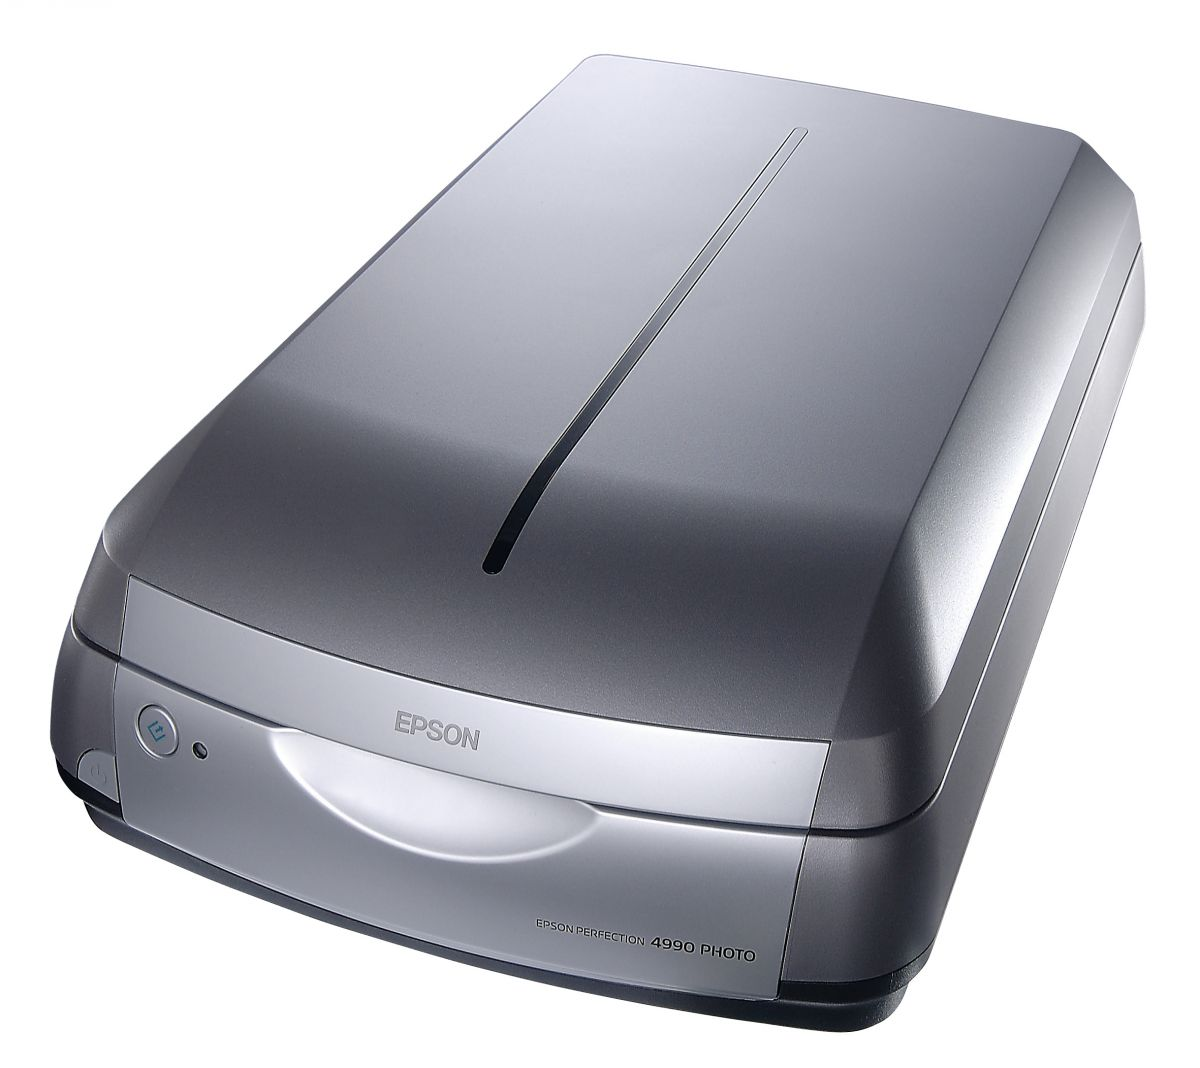 Epson Perfection 4990 Photo Driver Download